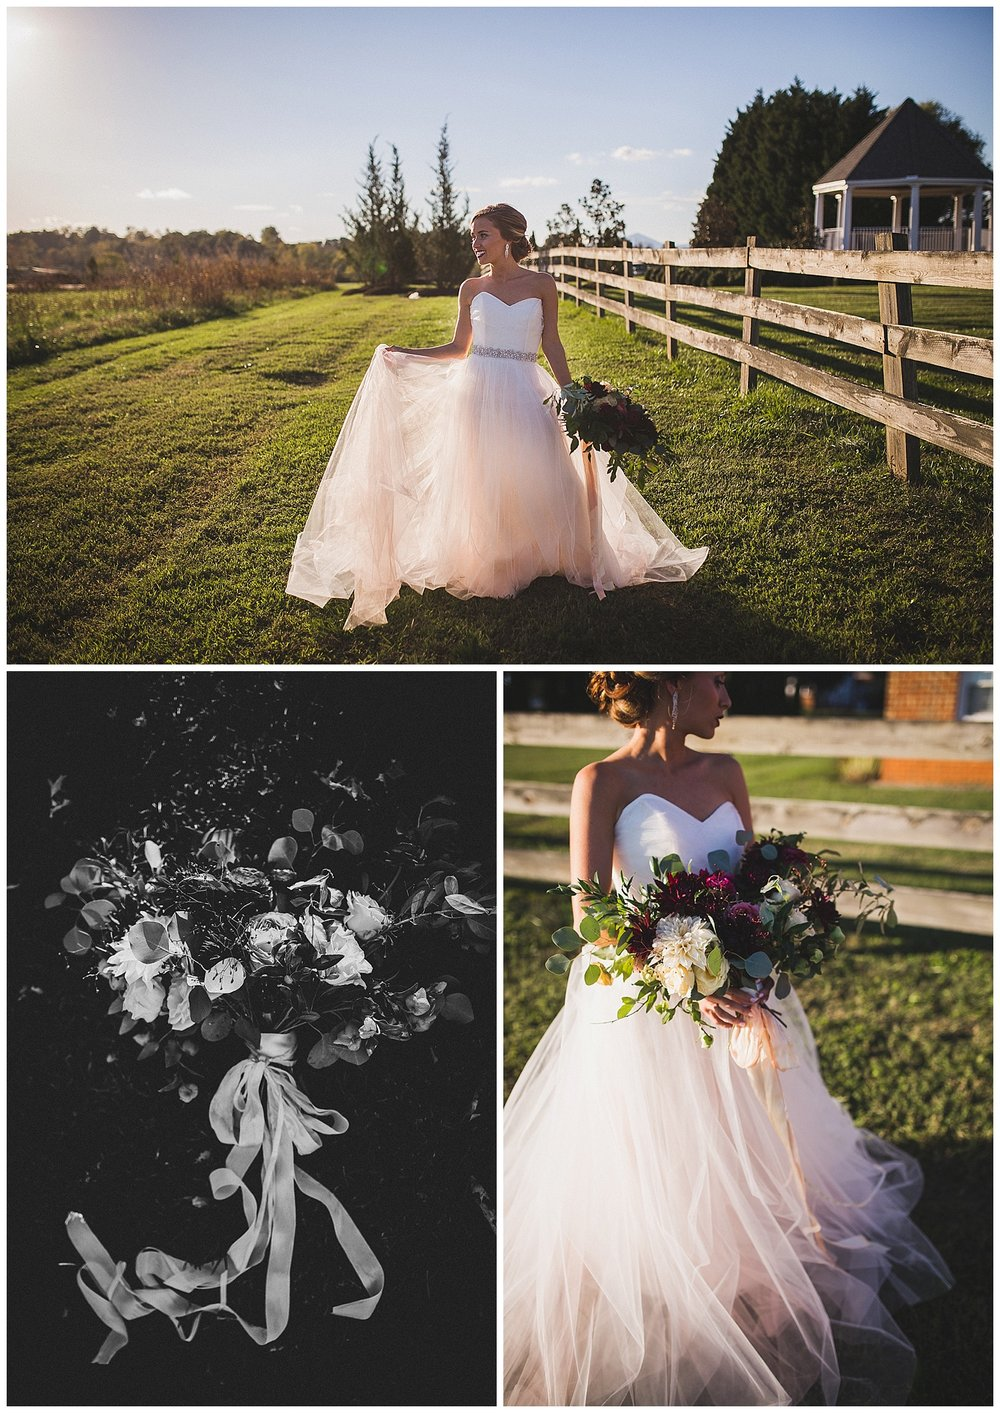 EmilyRogers-southwest-virginia-creative-wedding-photographer_0193.jpg